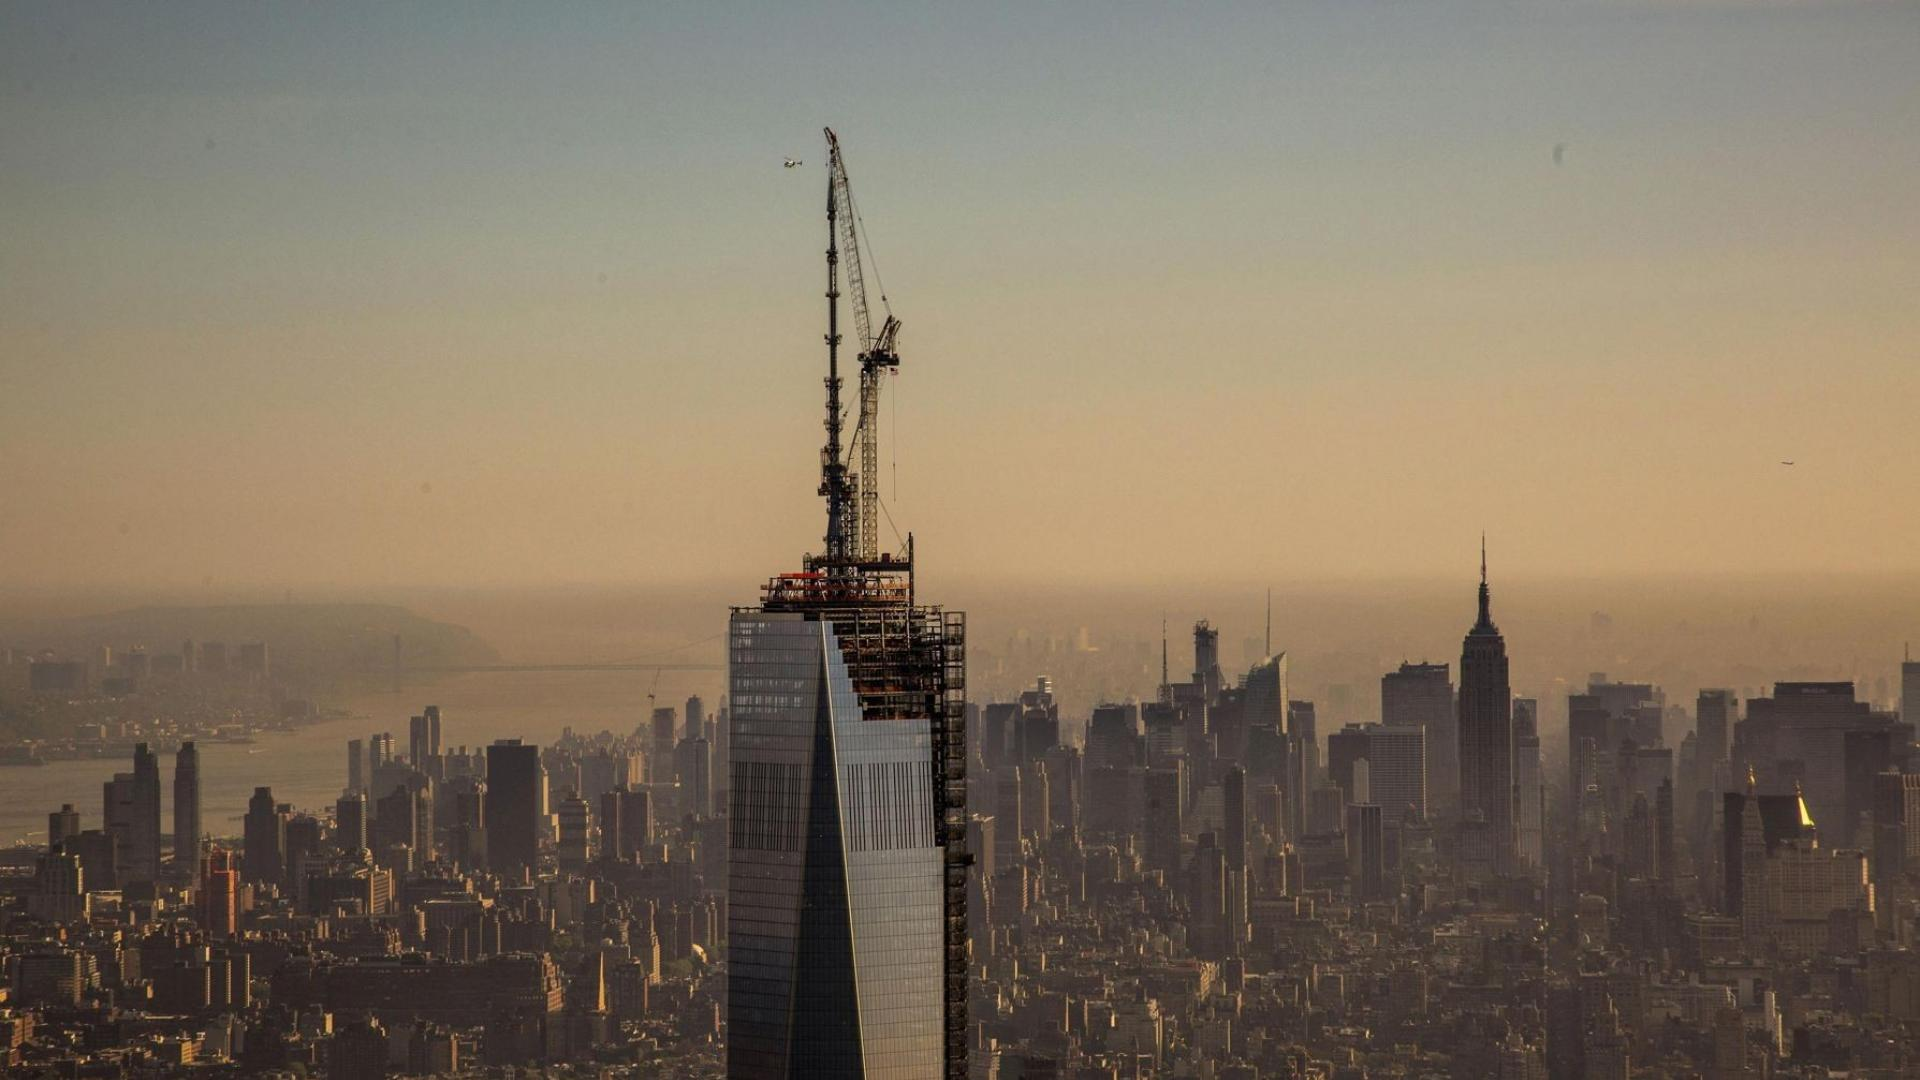 Unfinished freedom tower one world trade center wallpaper 65515 1920x1080